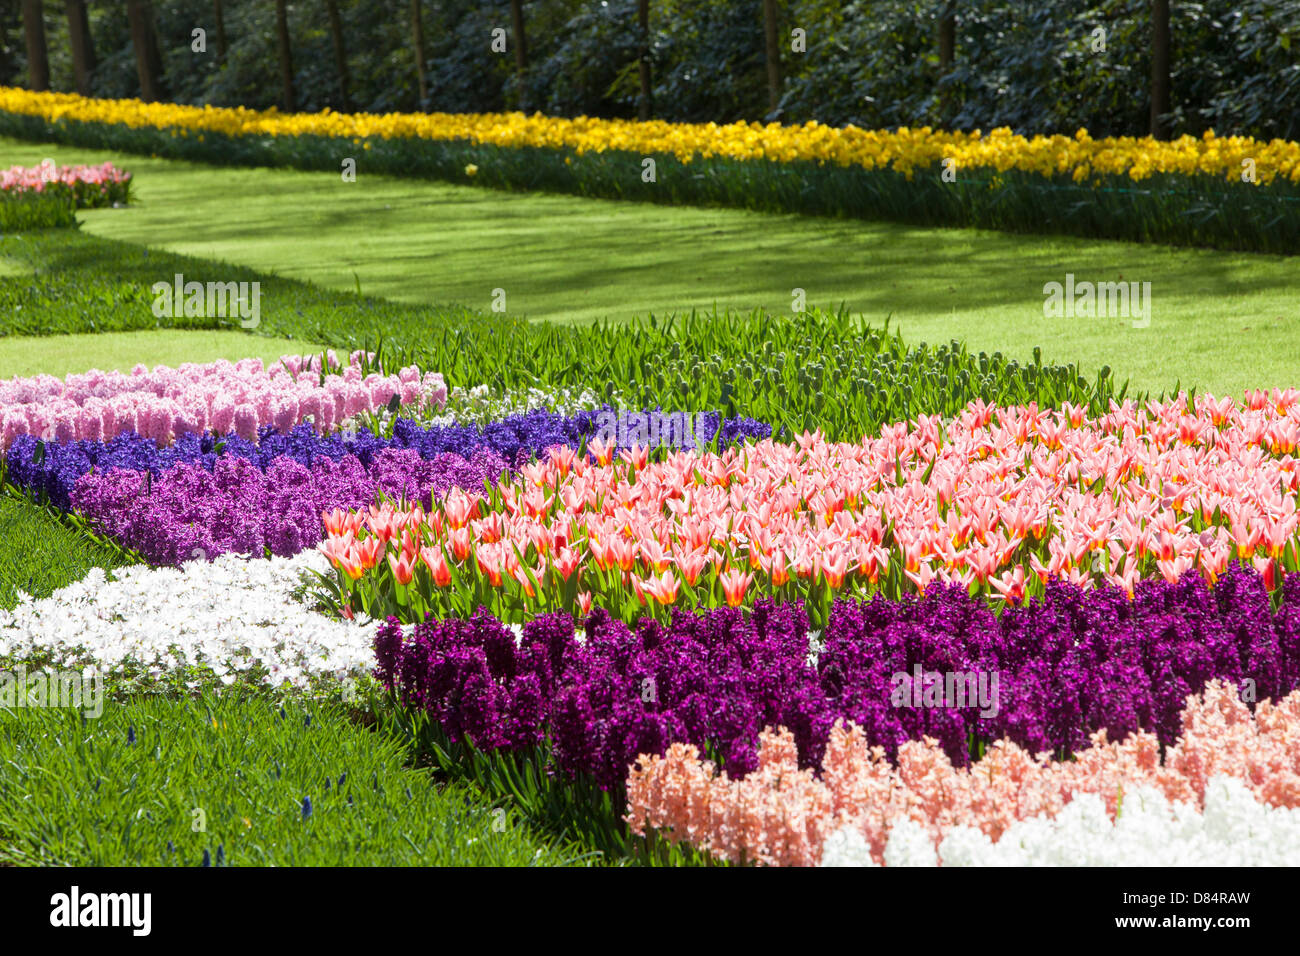 Tulips and Hyacinth at Keukenhof gardens, near, Lisse, Netherlands, the most famous Spring gardens in the world. - Stock Image